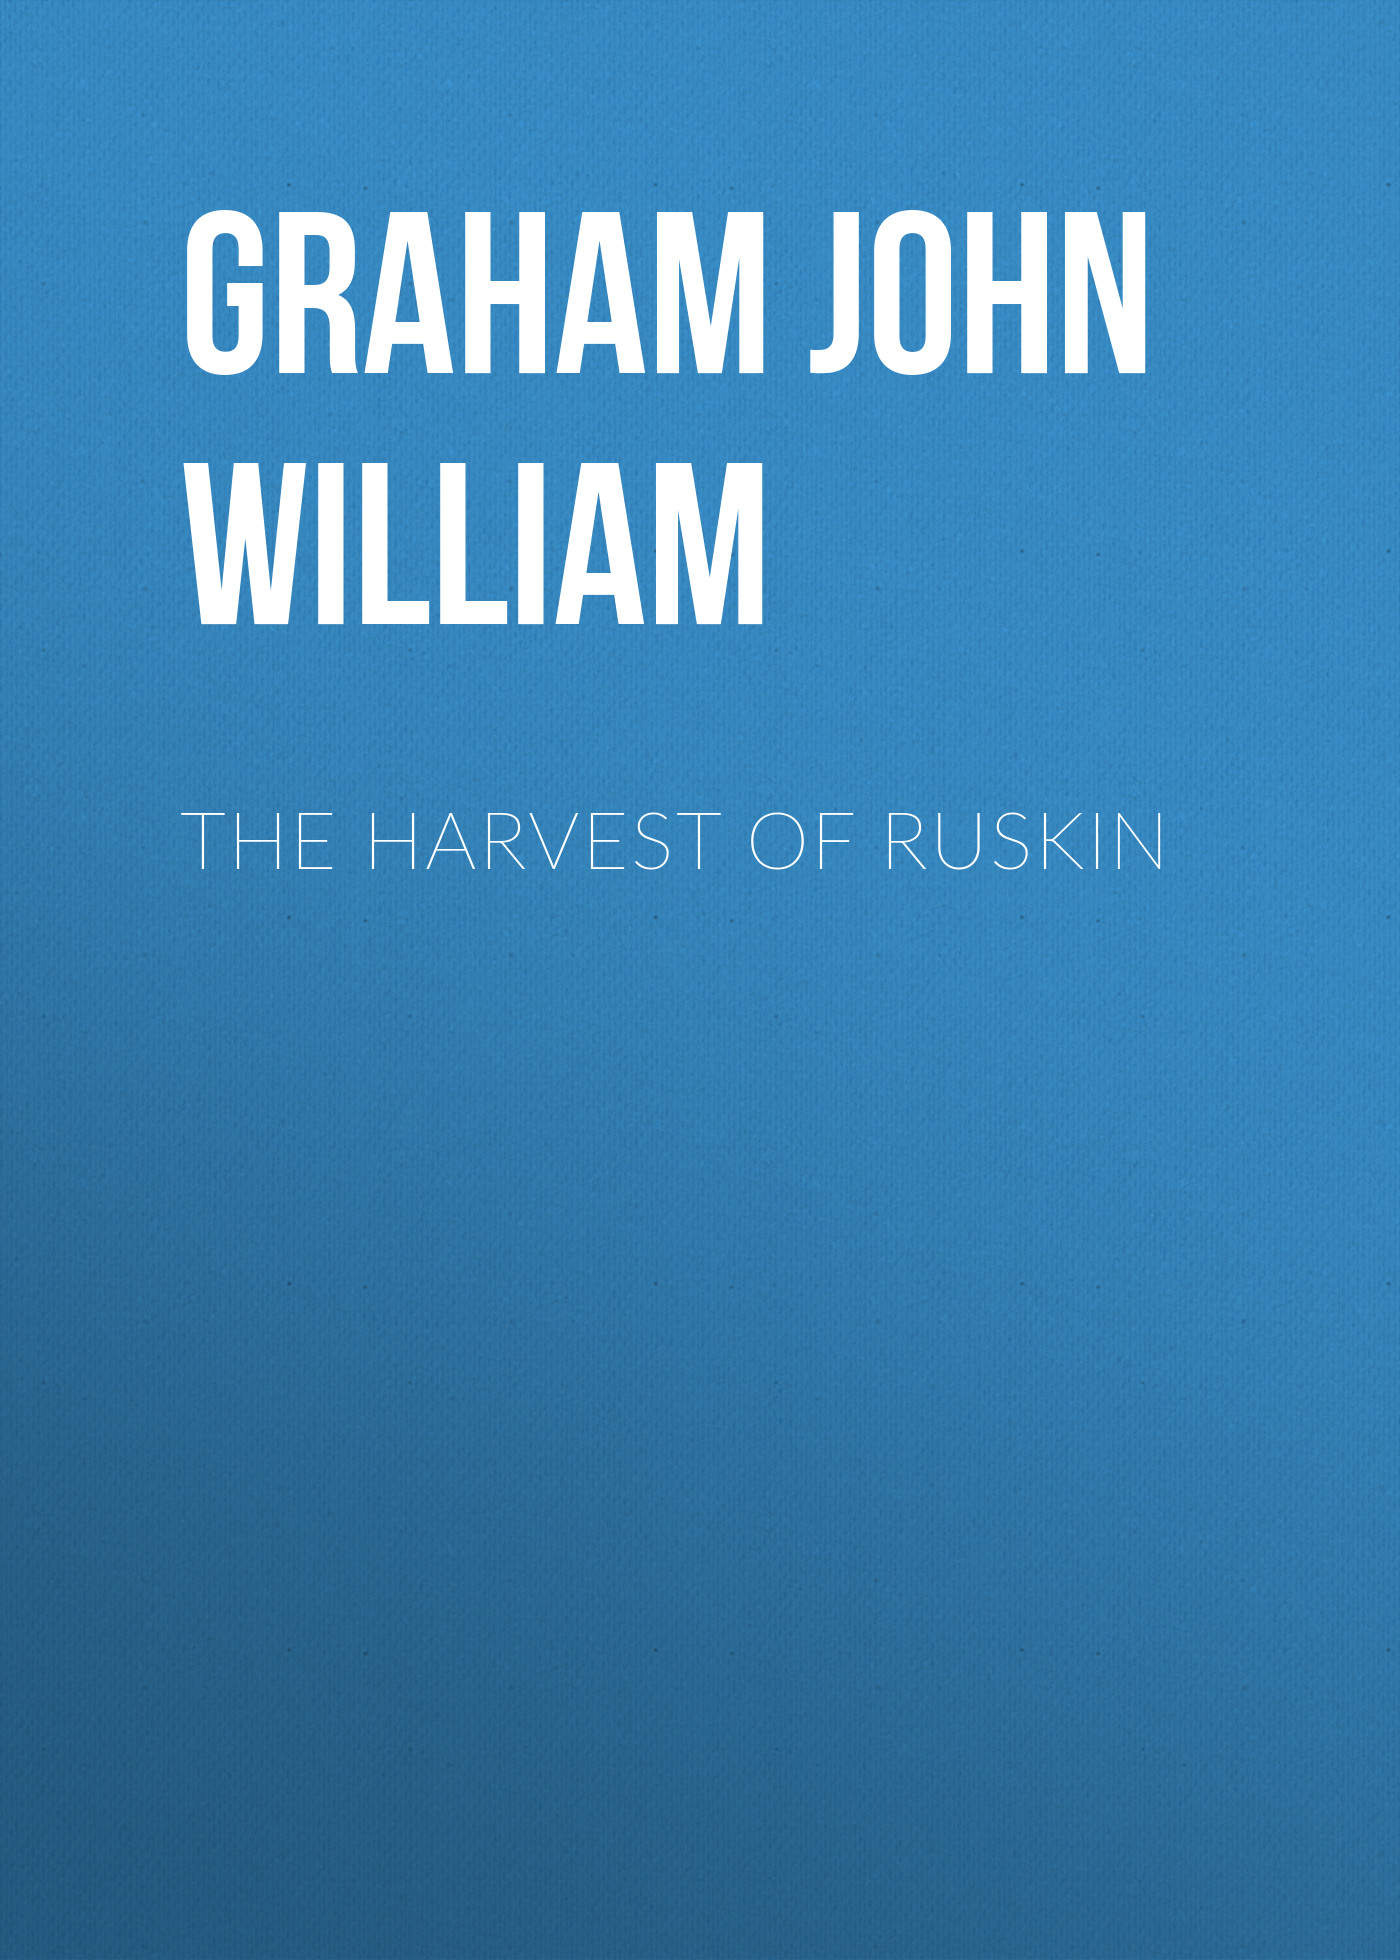 купить Graham John William The Harvest of Ruskin по цене 0 рублей